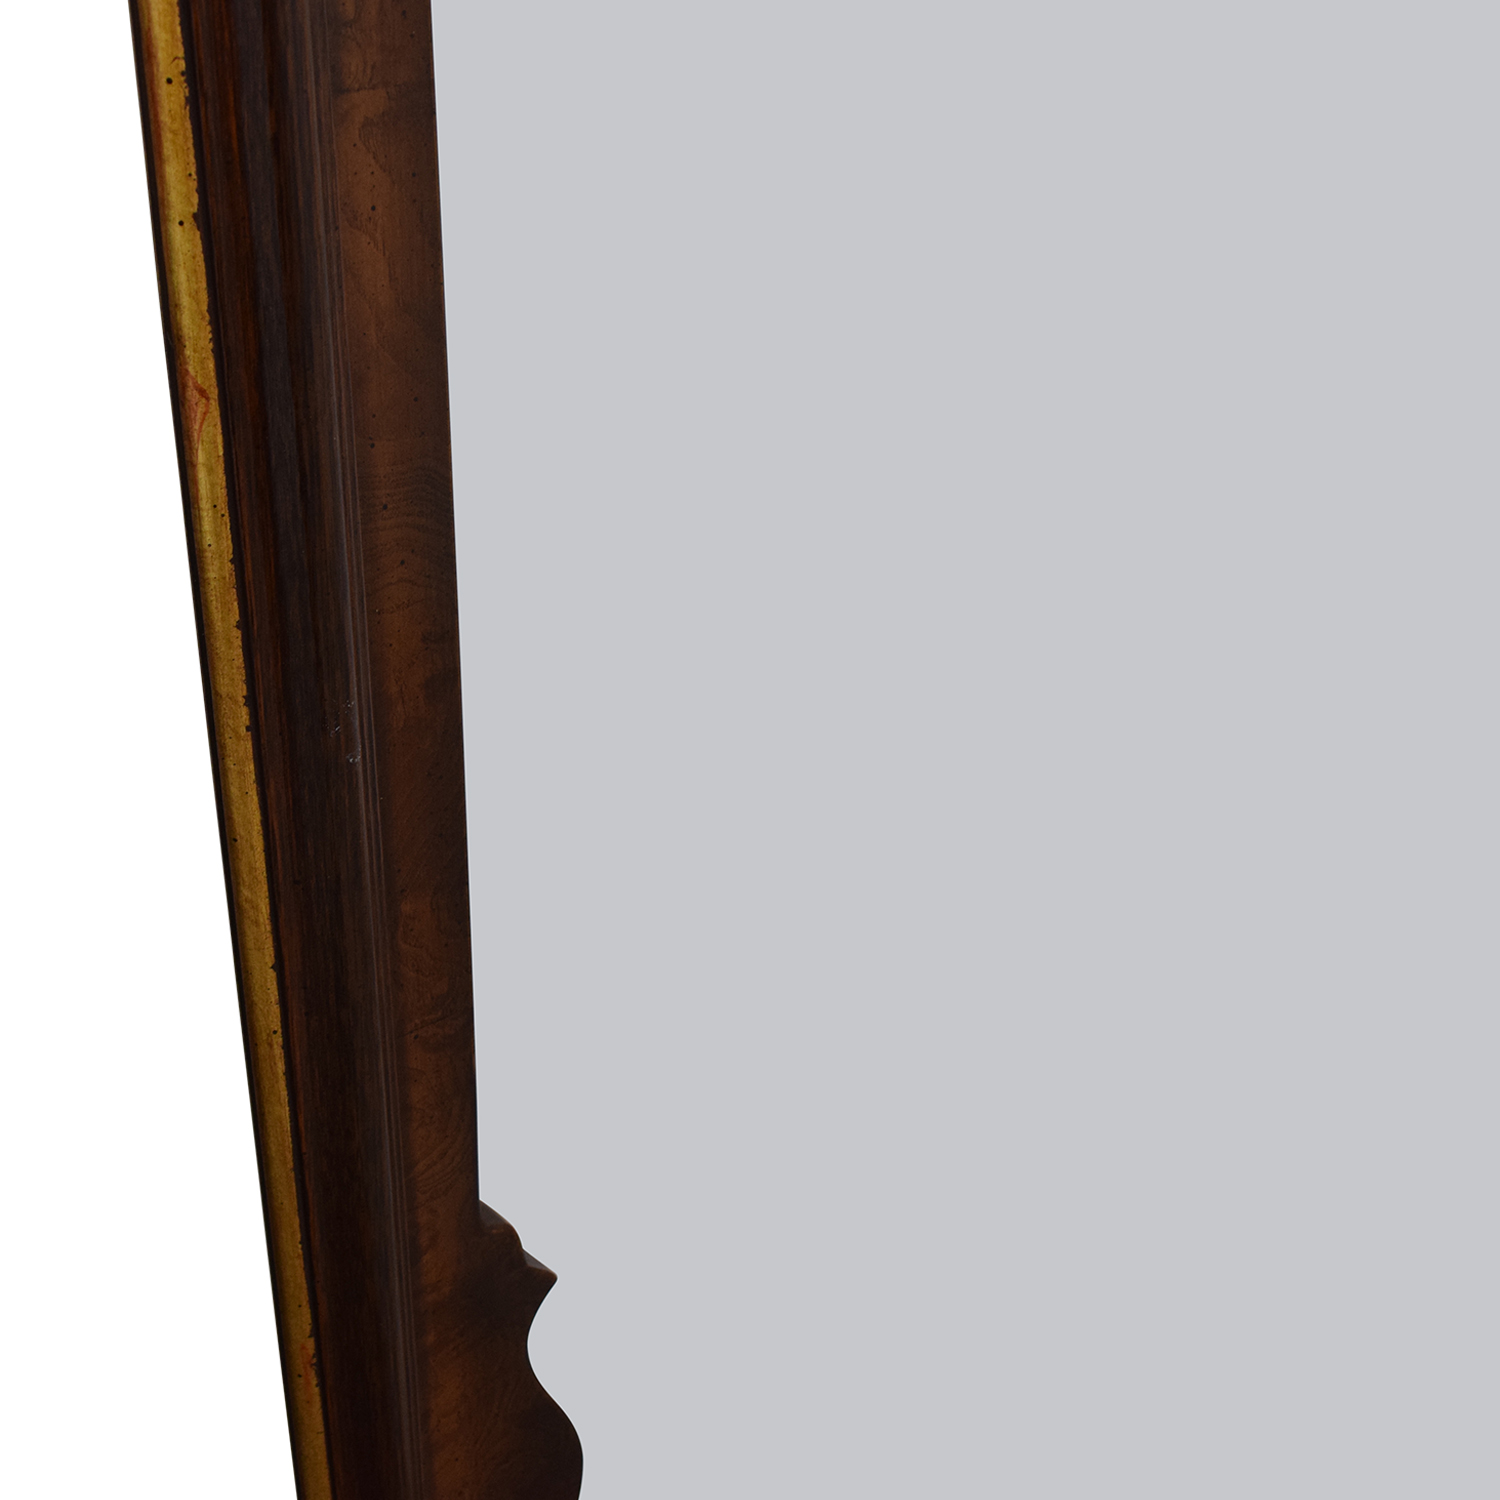 Henredon Furniture Henredon Mahogany Wall Mirror nj